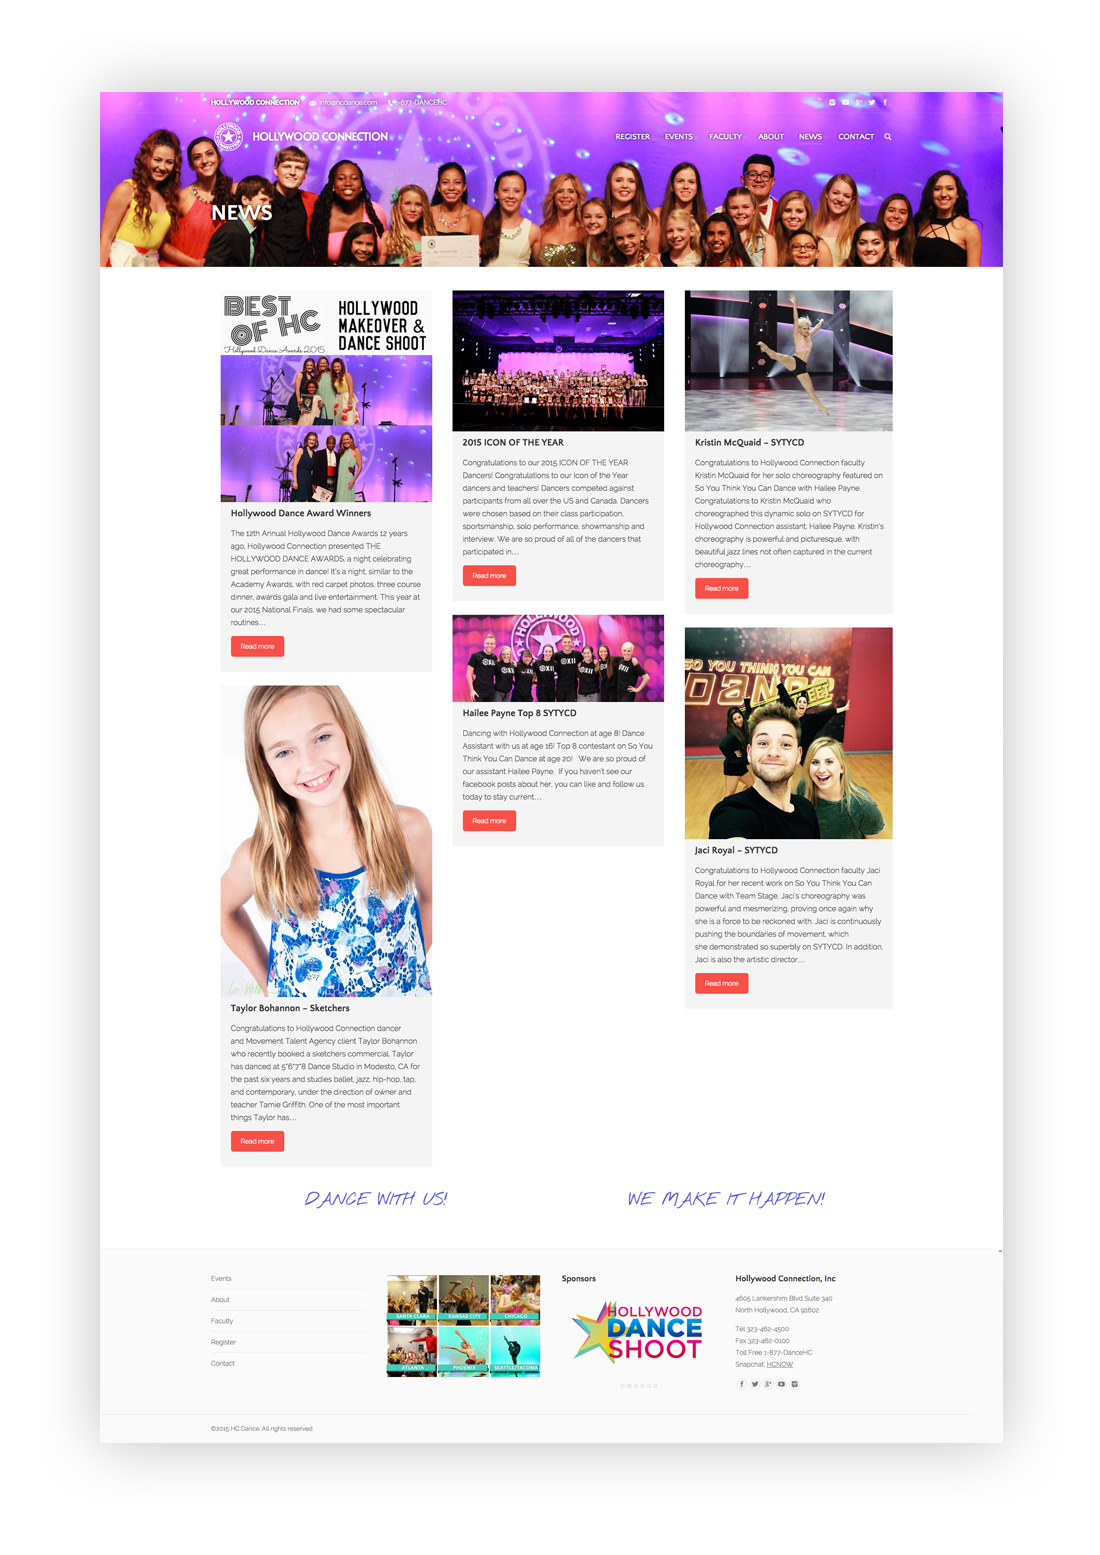 Image of News landing page designed by illumin8 marketing for HC Dance